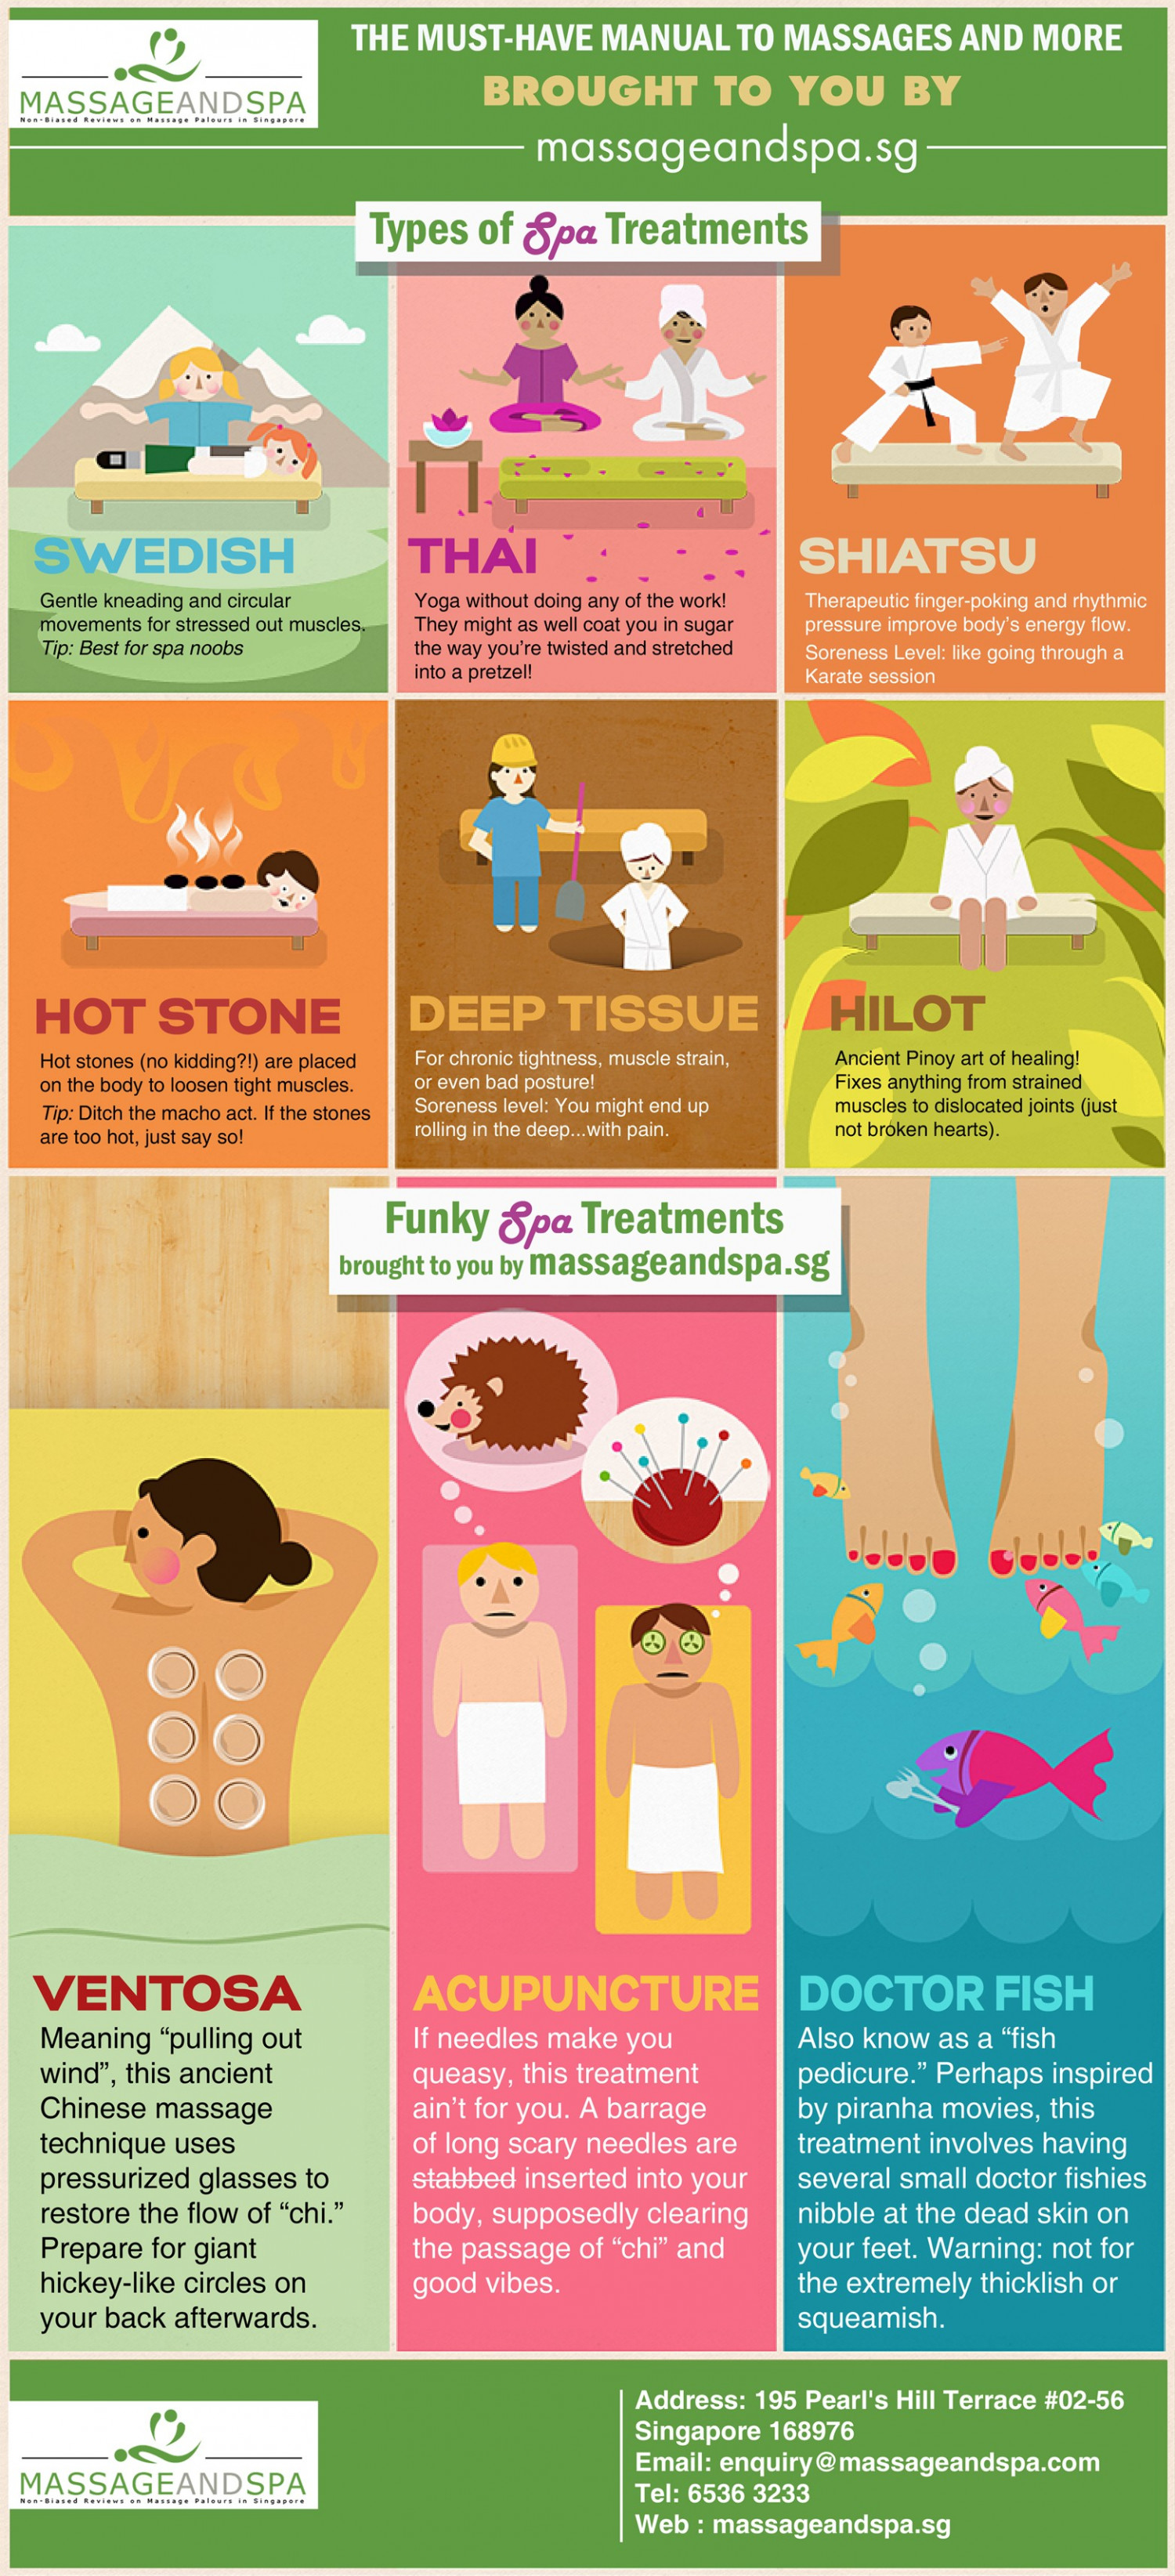 Massage and Spa SG infographic images Infographic